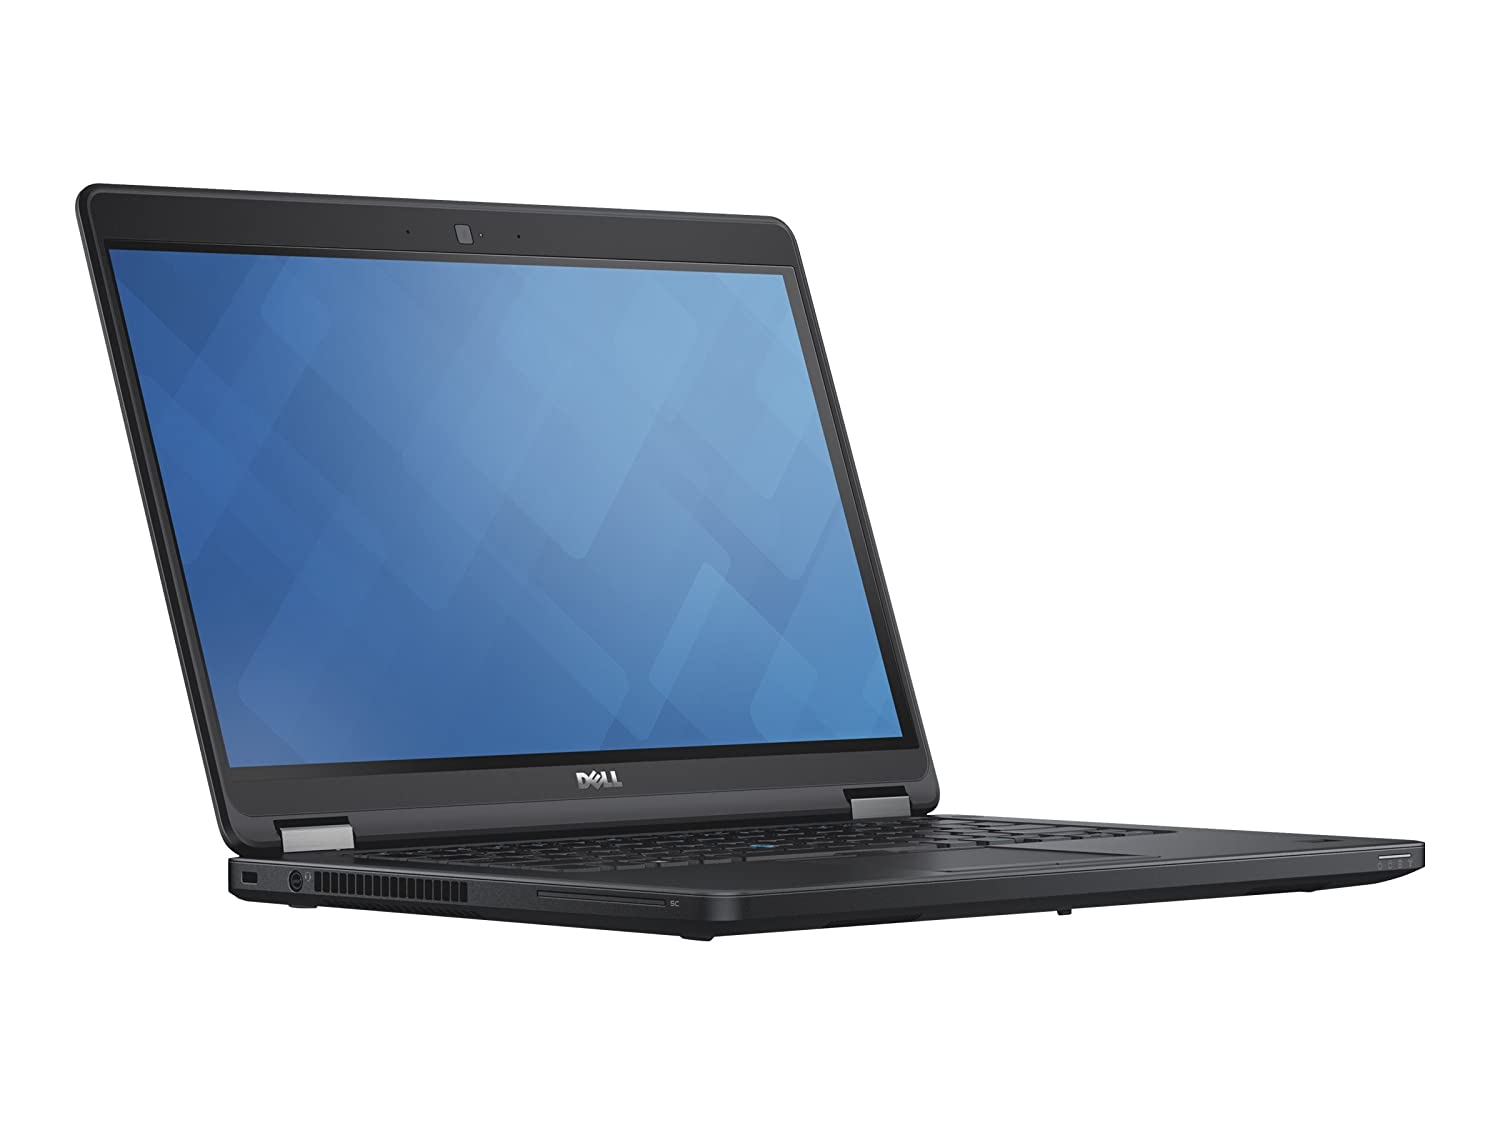 Dell Latitude E5450 14in Laptop, Intel Core i5-5300U 2.3Ghz, 8GB RAM, 256GB Solid State Drive, Windows 10 Pro 64bit (Renewed)